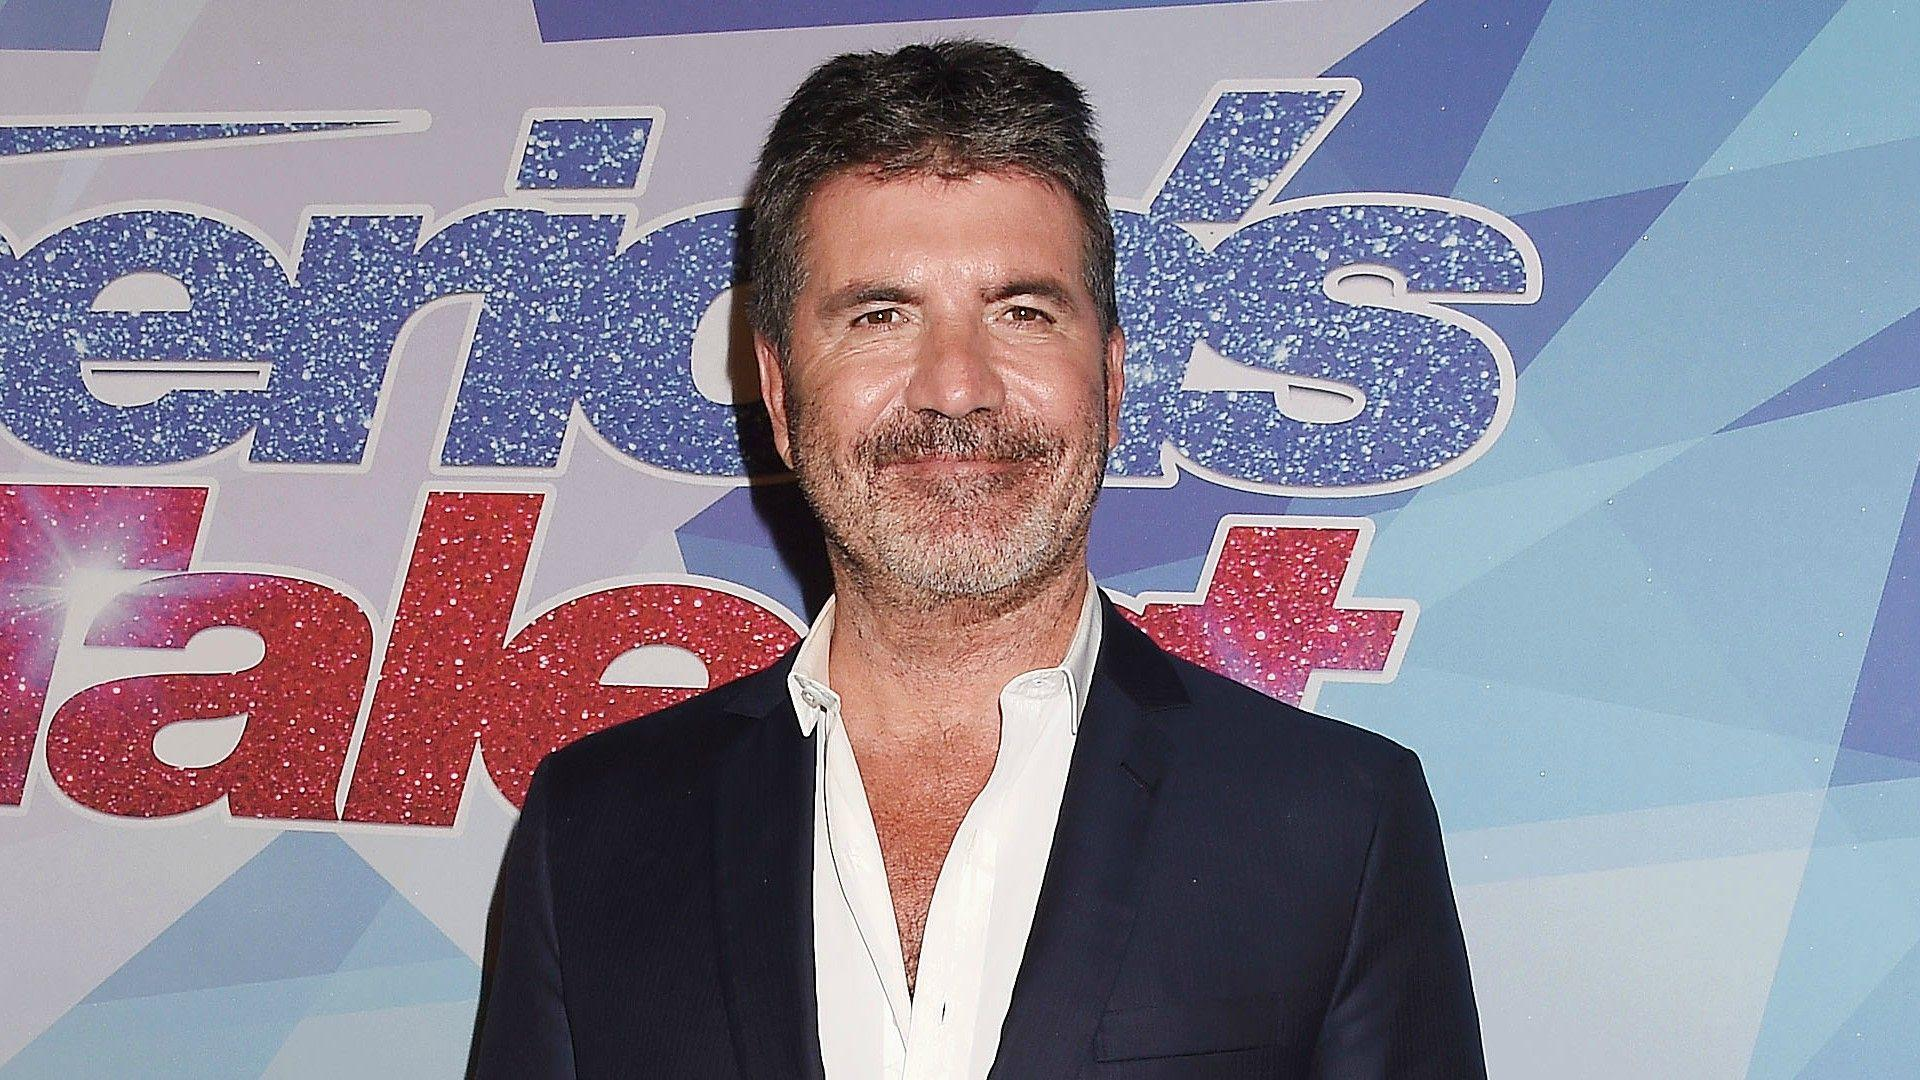 Simon Cowell Gives Health Update After Being Rushed to the Hospital